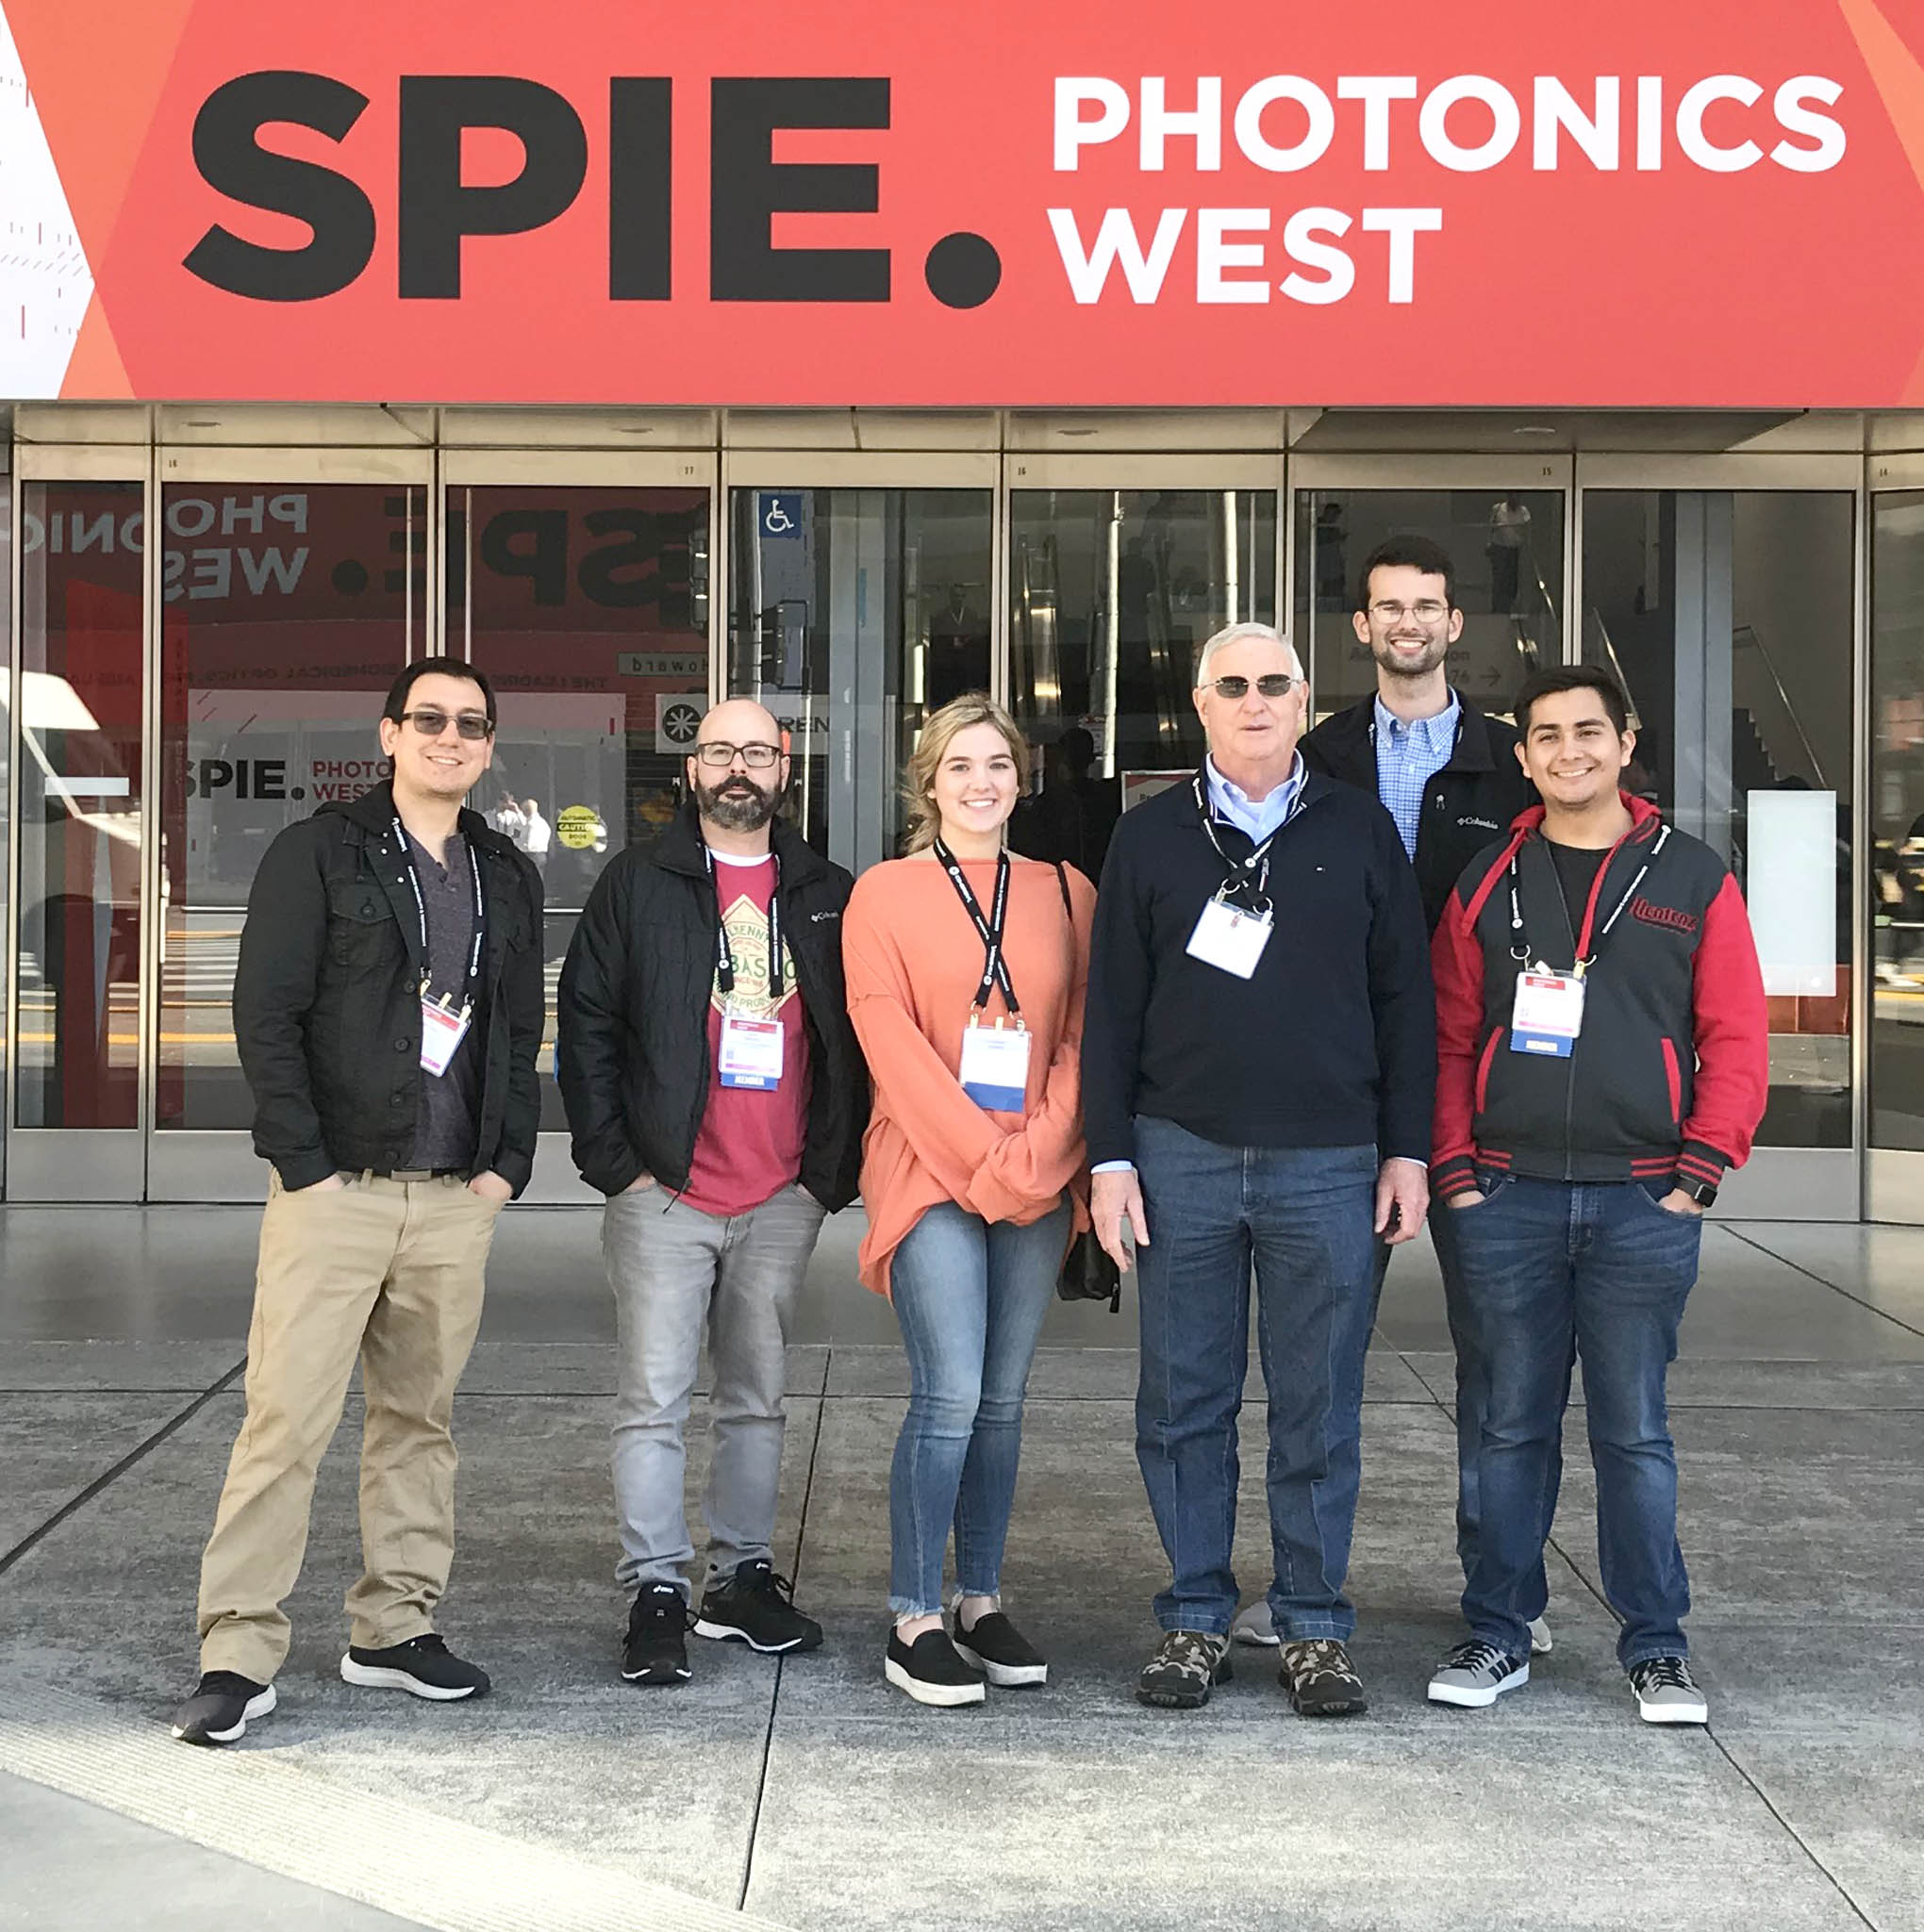 Click to enlarge,  Second-year students in the Laser and Photonics Technology program at Central Carolina Community College attended the 2020 SPIE Photonics West Convention in San Francisco. Previous CCCC Laser graduate Al Delong also attended the convention.  Pictured are, left to right: Al Delong, John Brooks, Cassidy Harris, Gary Beasley (Lead Instructor), Xan Bayles, and Angel Gonzalez-Aguilar.